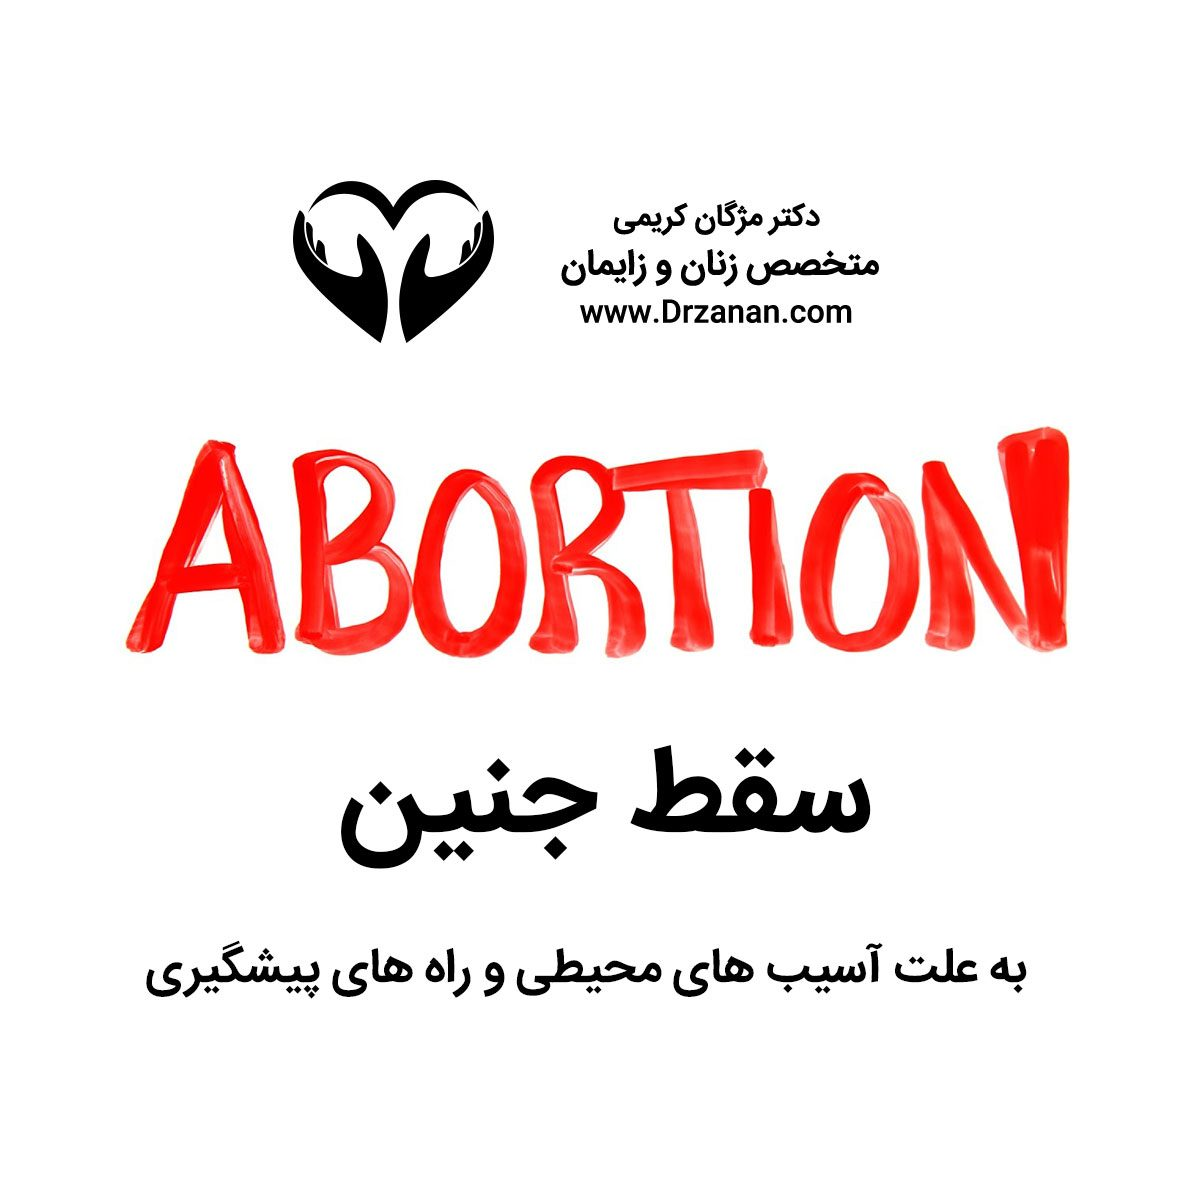 abortion-due-to-environmental-damage-and-prevention-methods-1200x1200.jpg